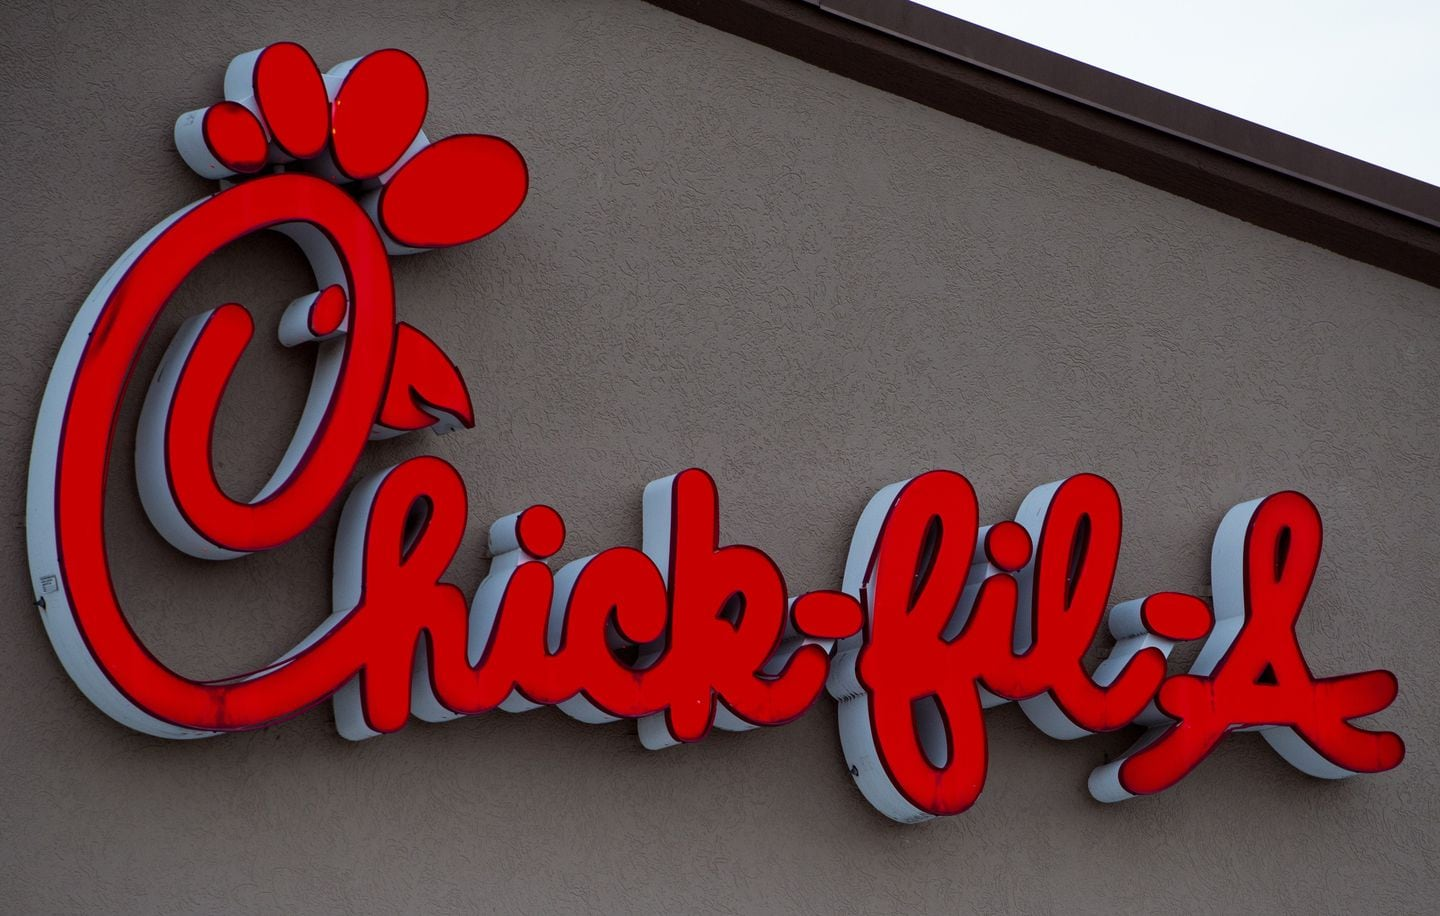 Days after opening its first U.K. restaurant, Chick-fil-A announces the location will close – The Washington Post